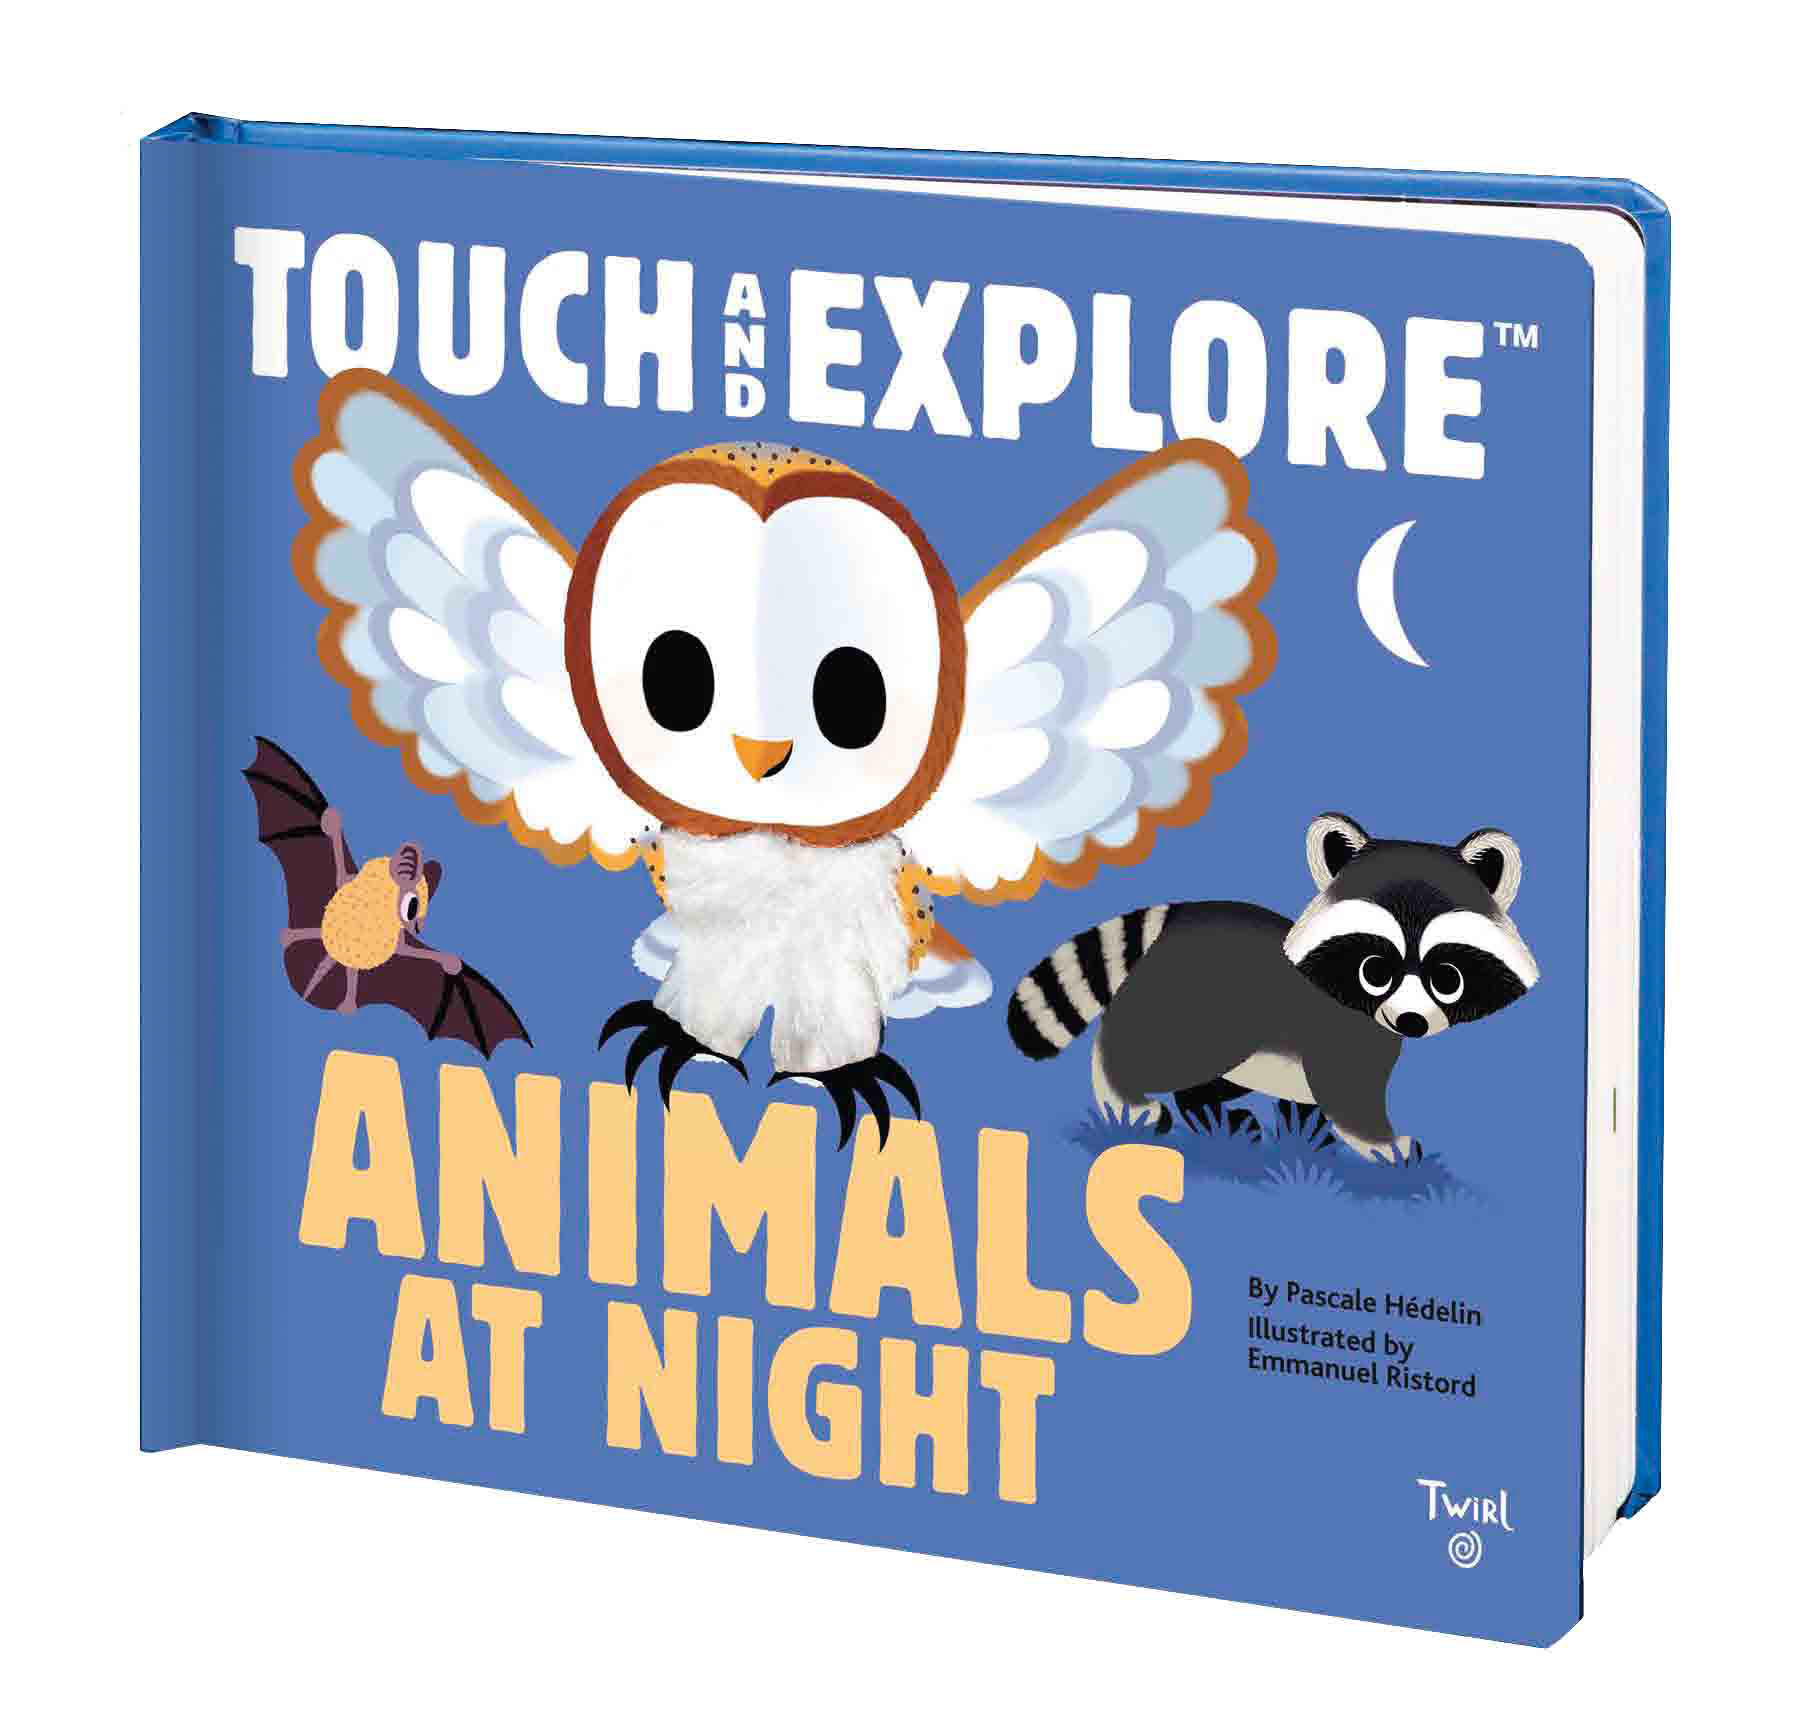 touch and explore animals at night book-1